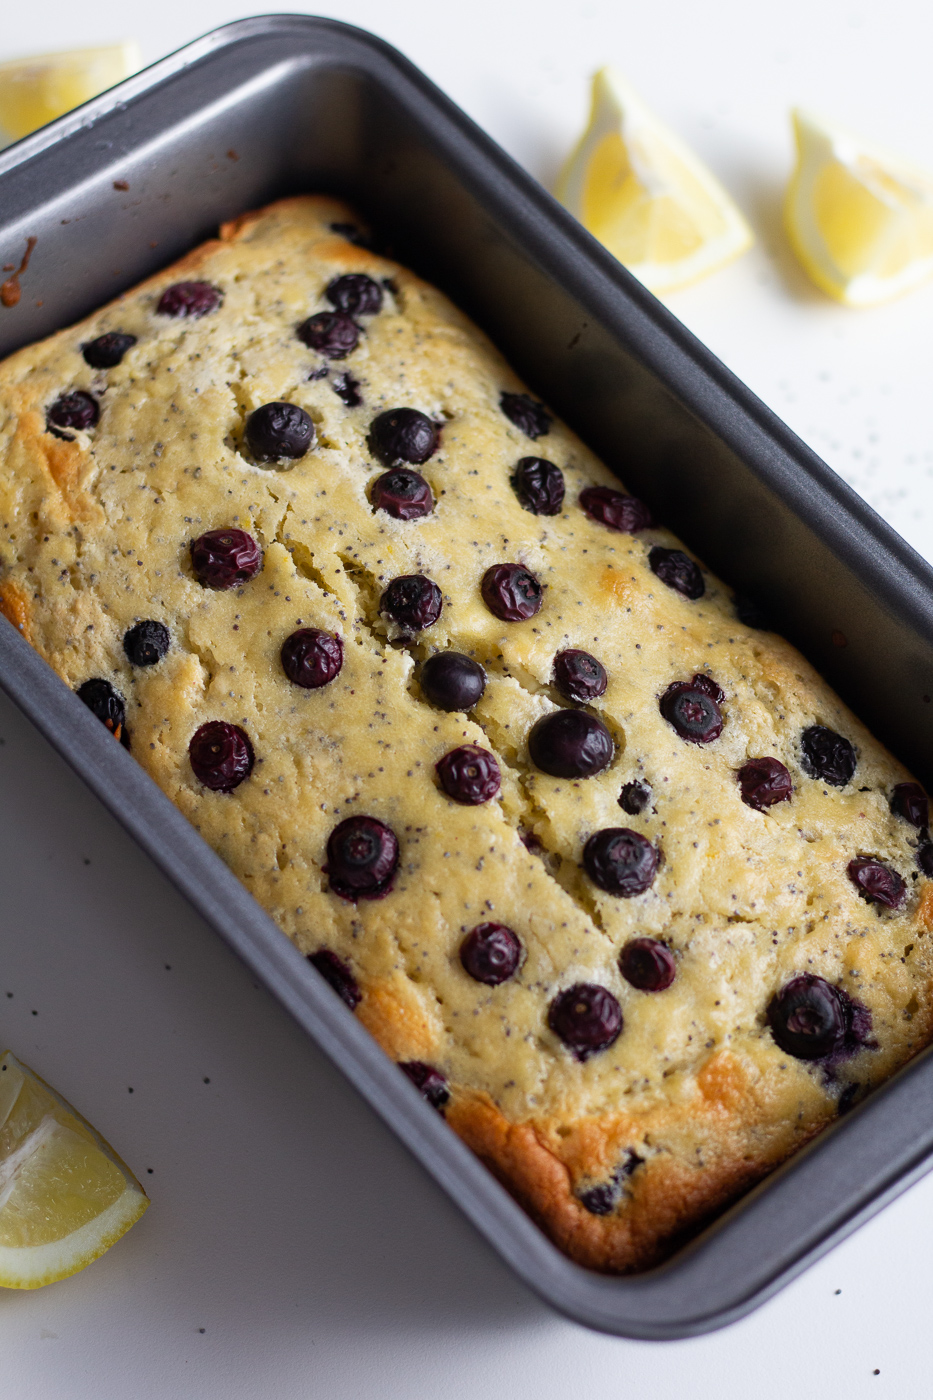 Healthier Blueberry Lemon Poppy Seed Bread with Cream Cheese